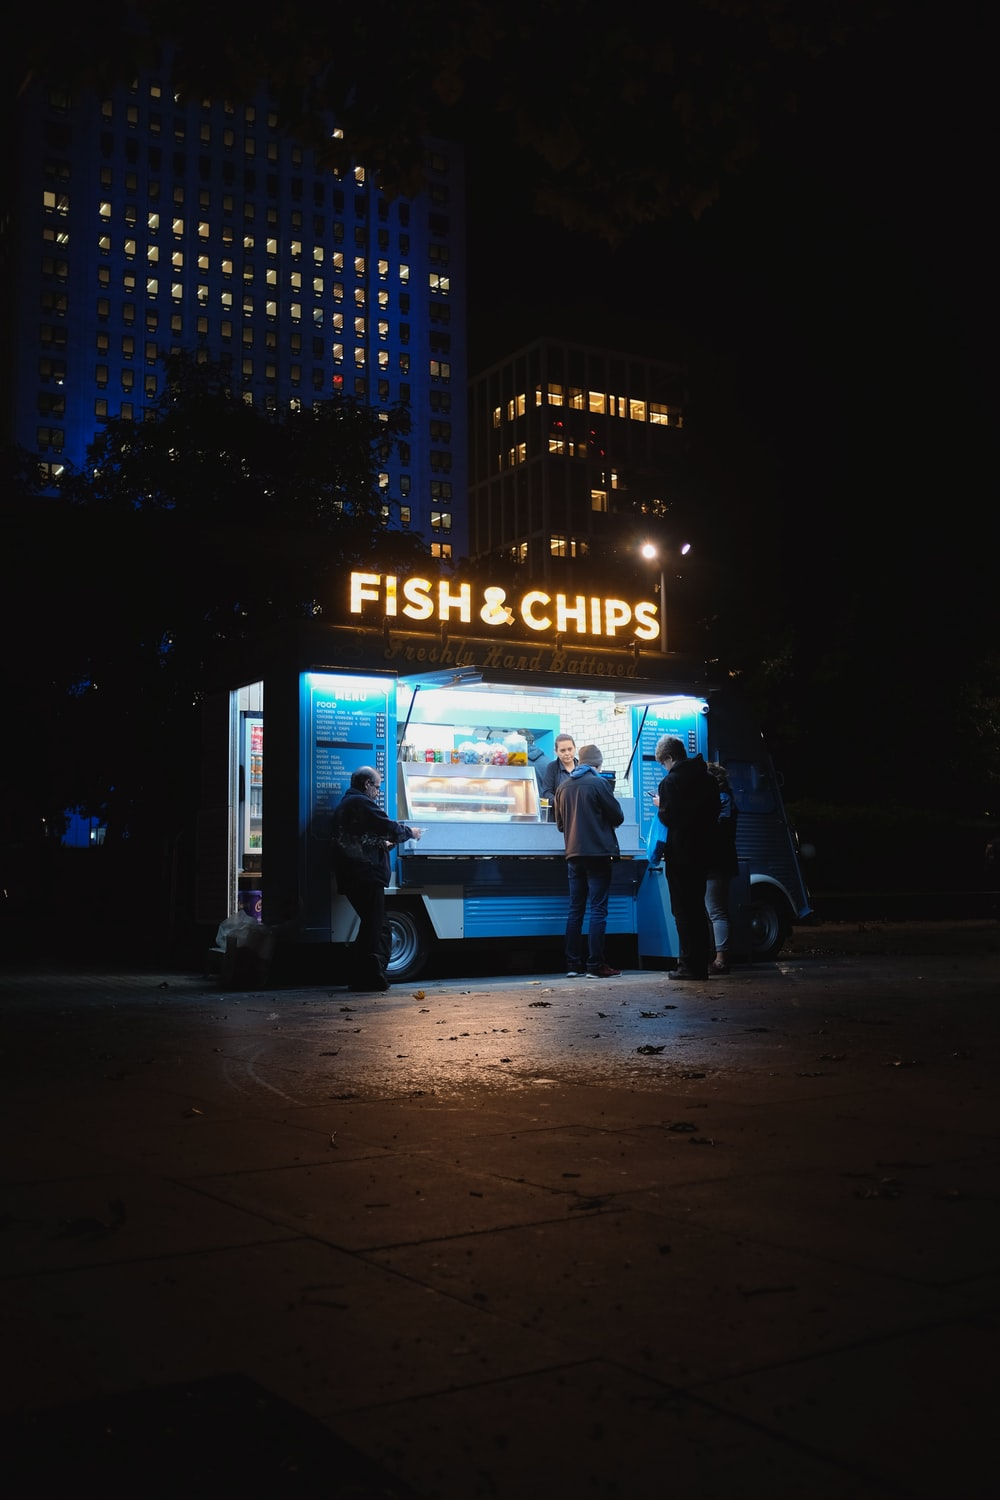 group of people standing on Fish & Chips store